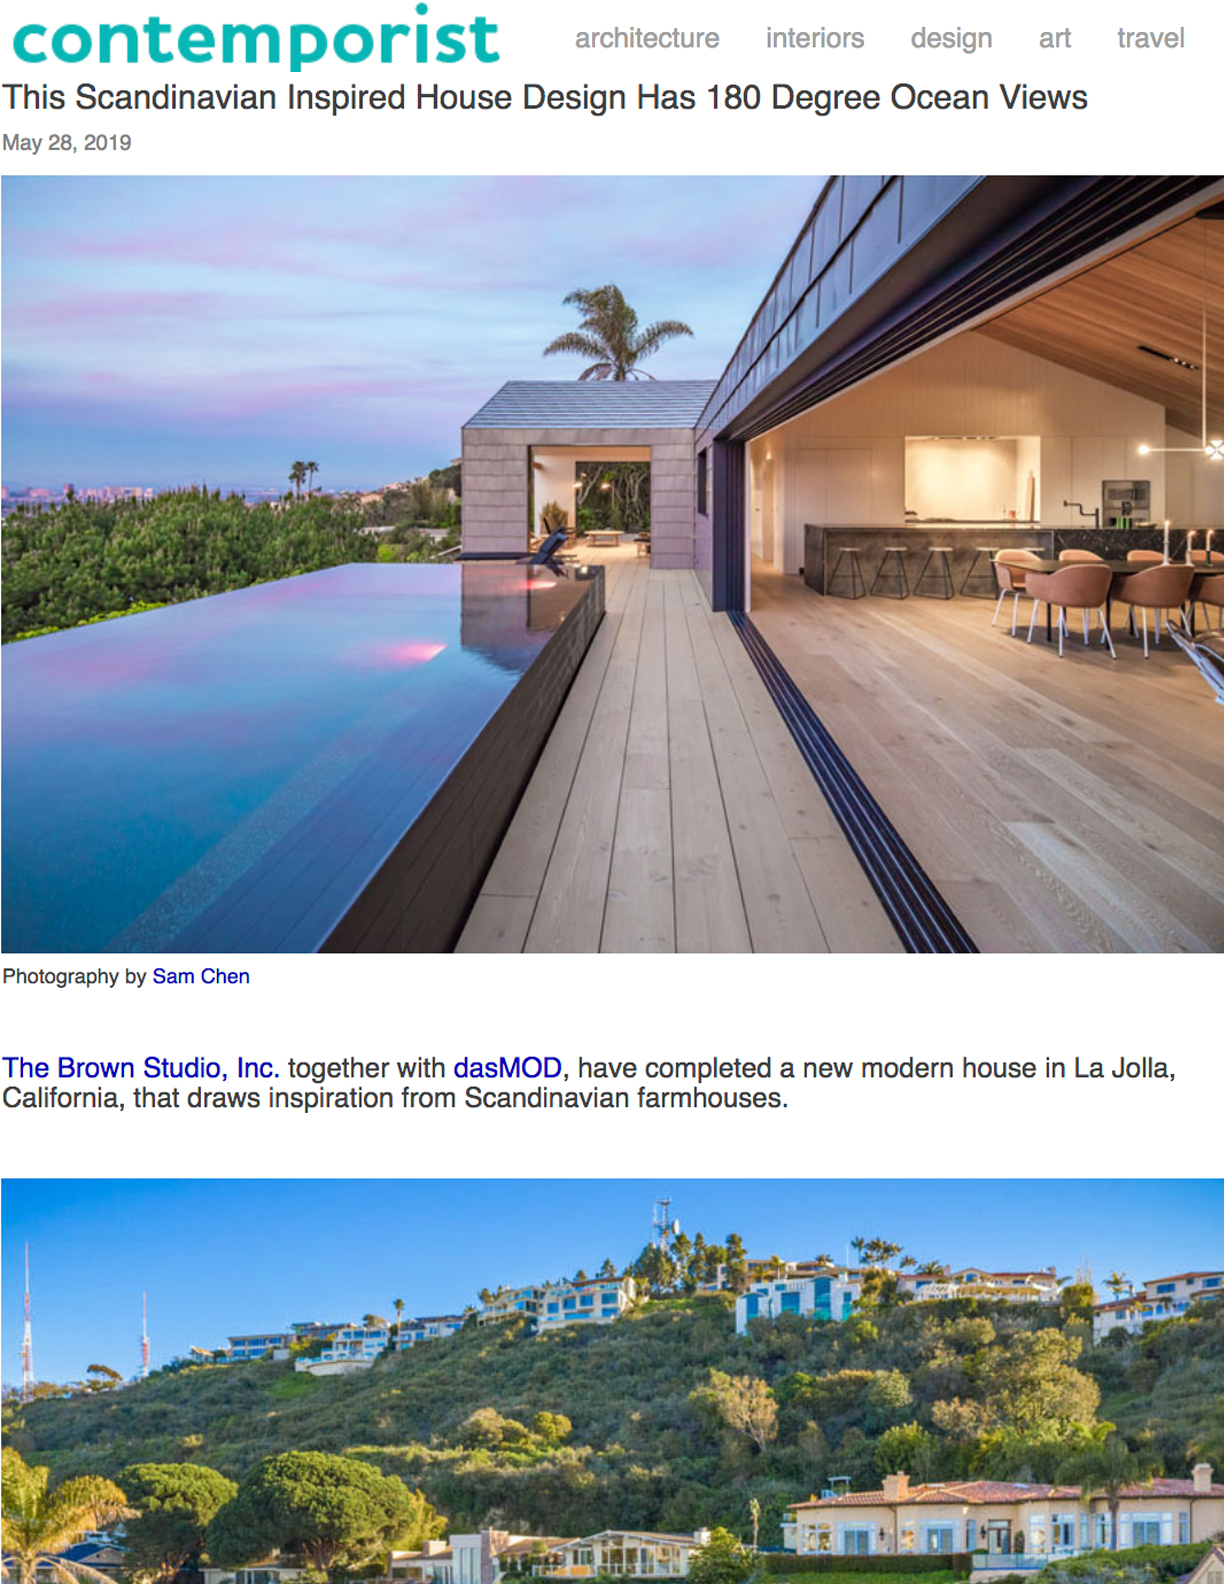 CONTEMPORIST   May 28, 2019  Scandinavian Inspired House Design with 180 Degree Ocean Views.